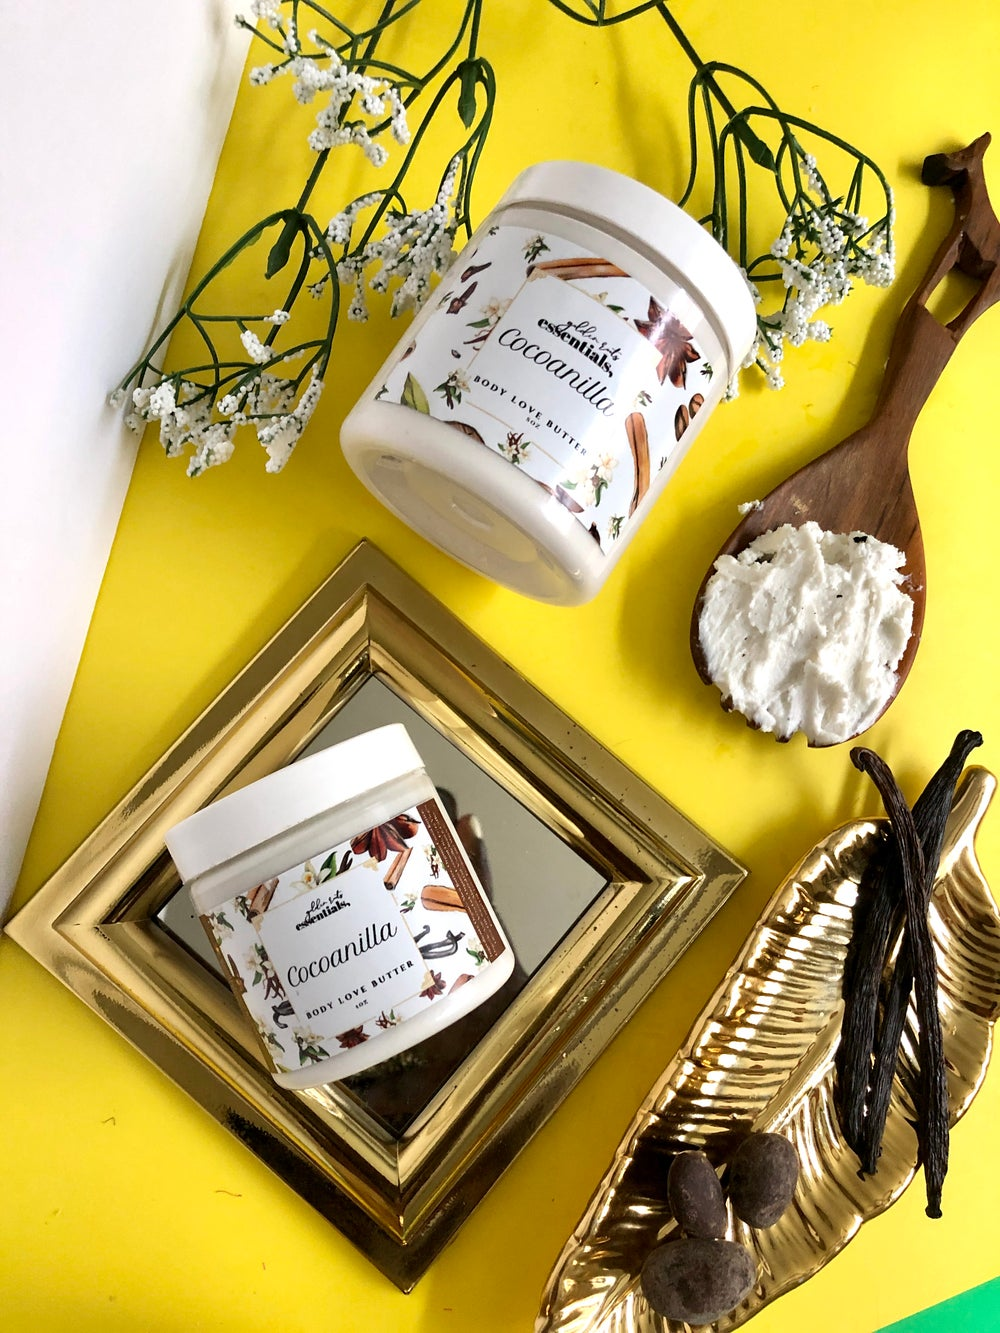 Image of Cocoanilla- Body Love Butter